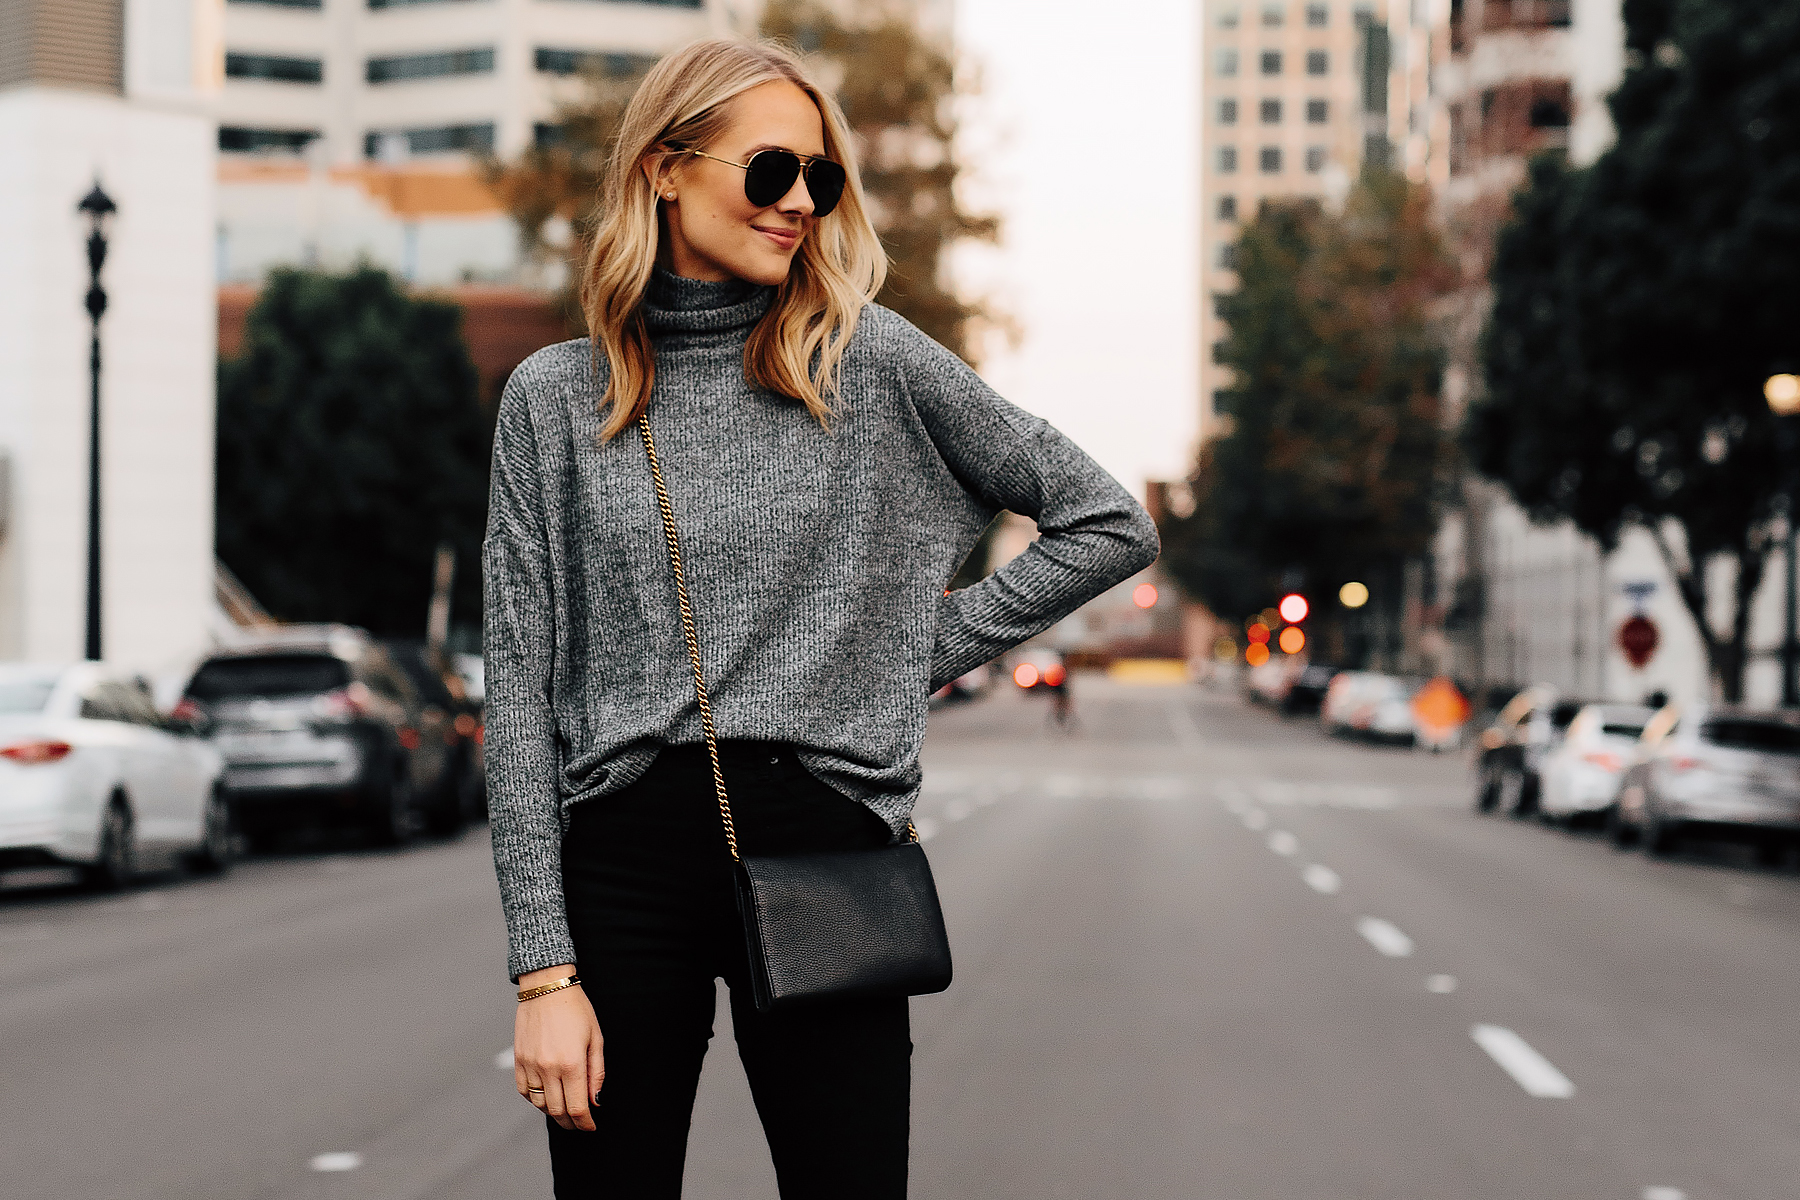 Blonde Woman Wearing Heather Grey Turtleneck Black Skinny Jeans Outfit Fashion Jackson San Diego Fashion Blogger Street Style